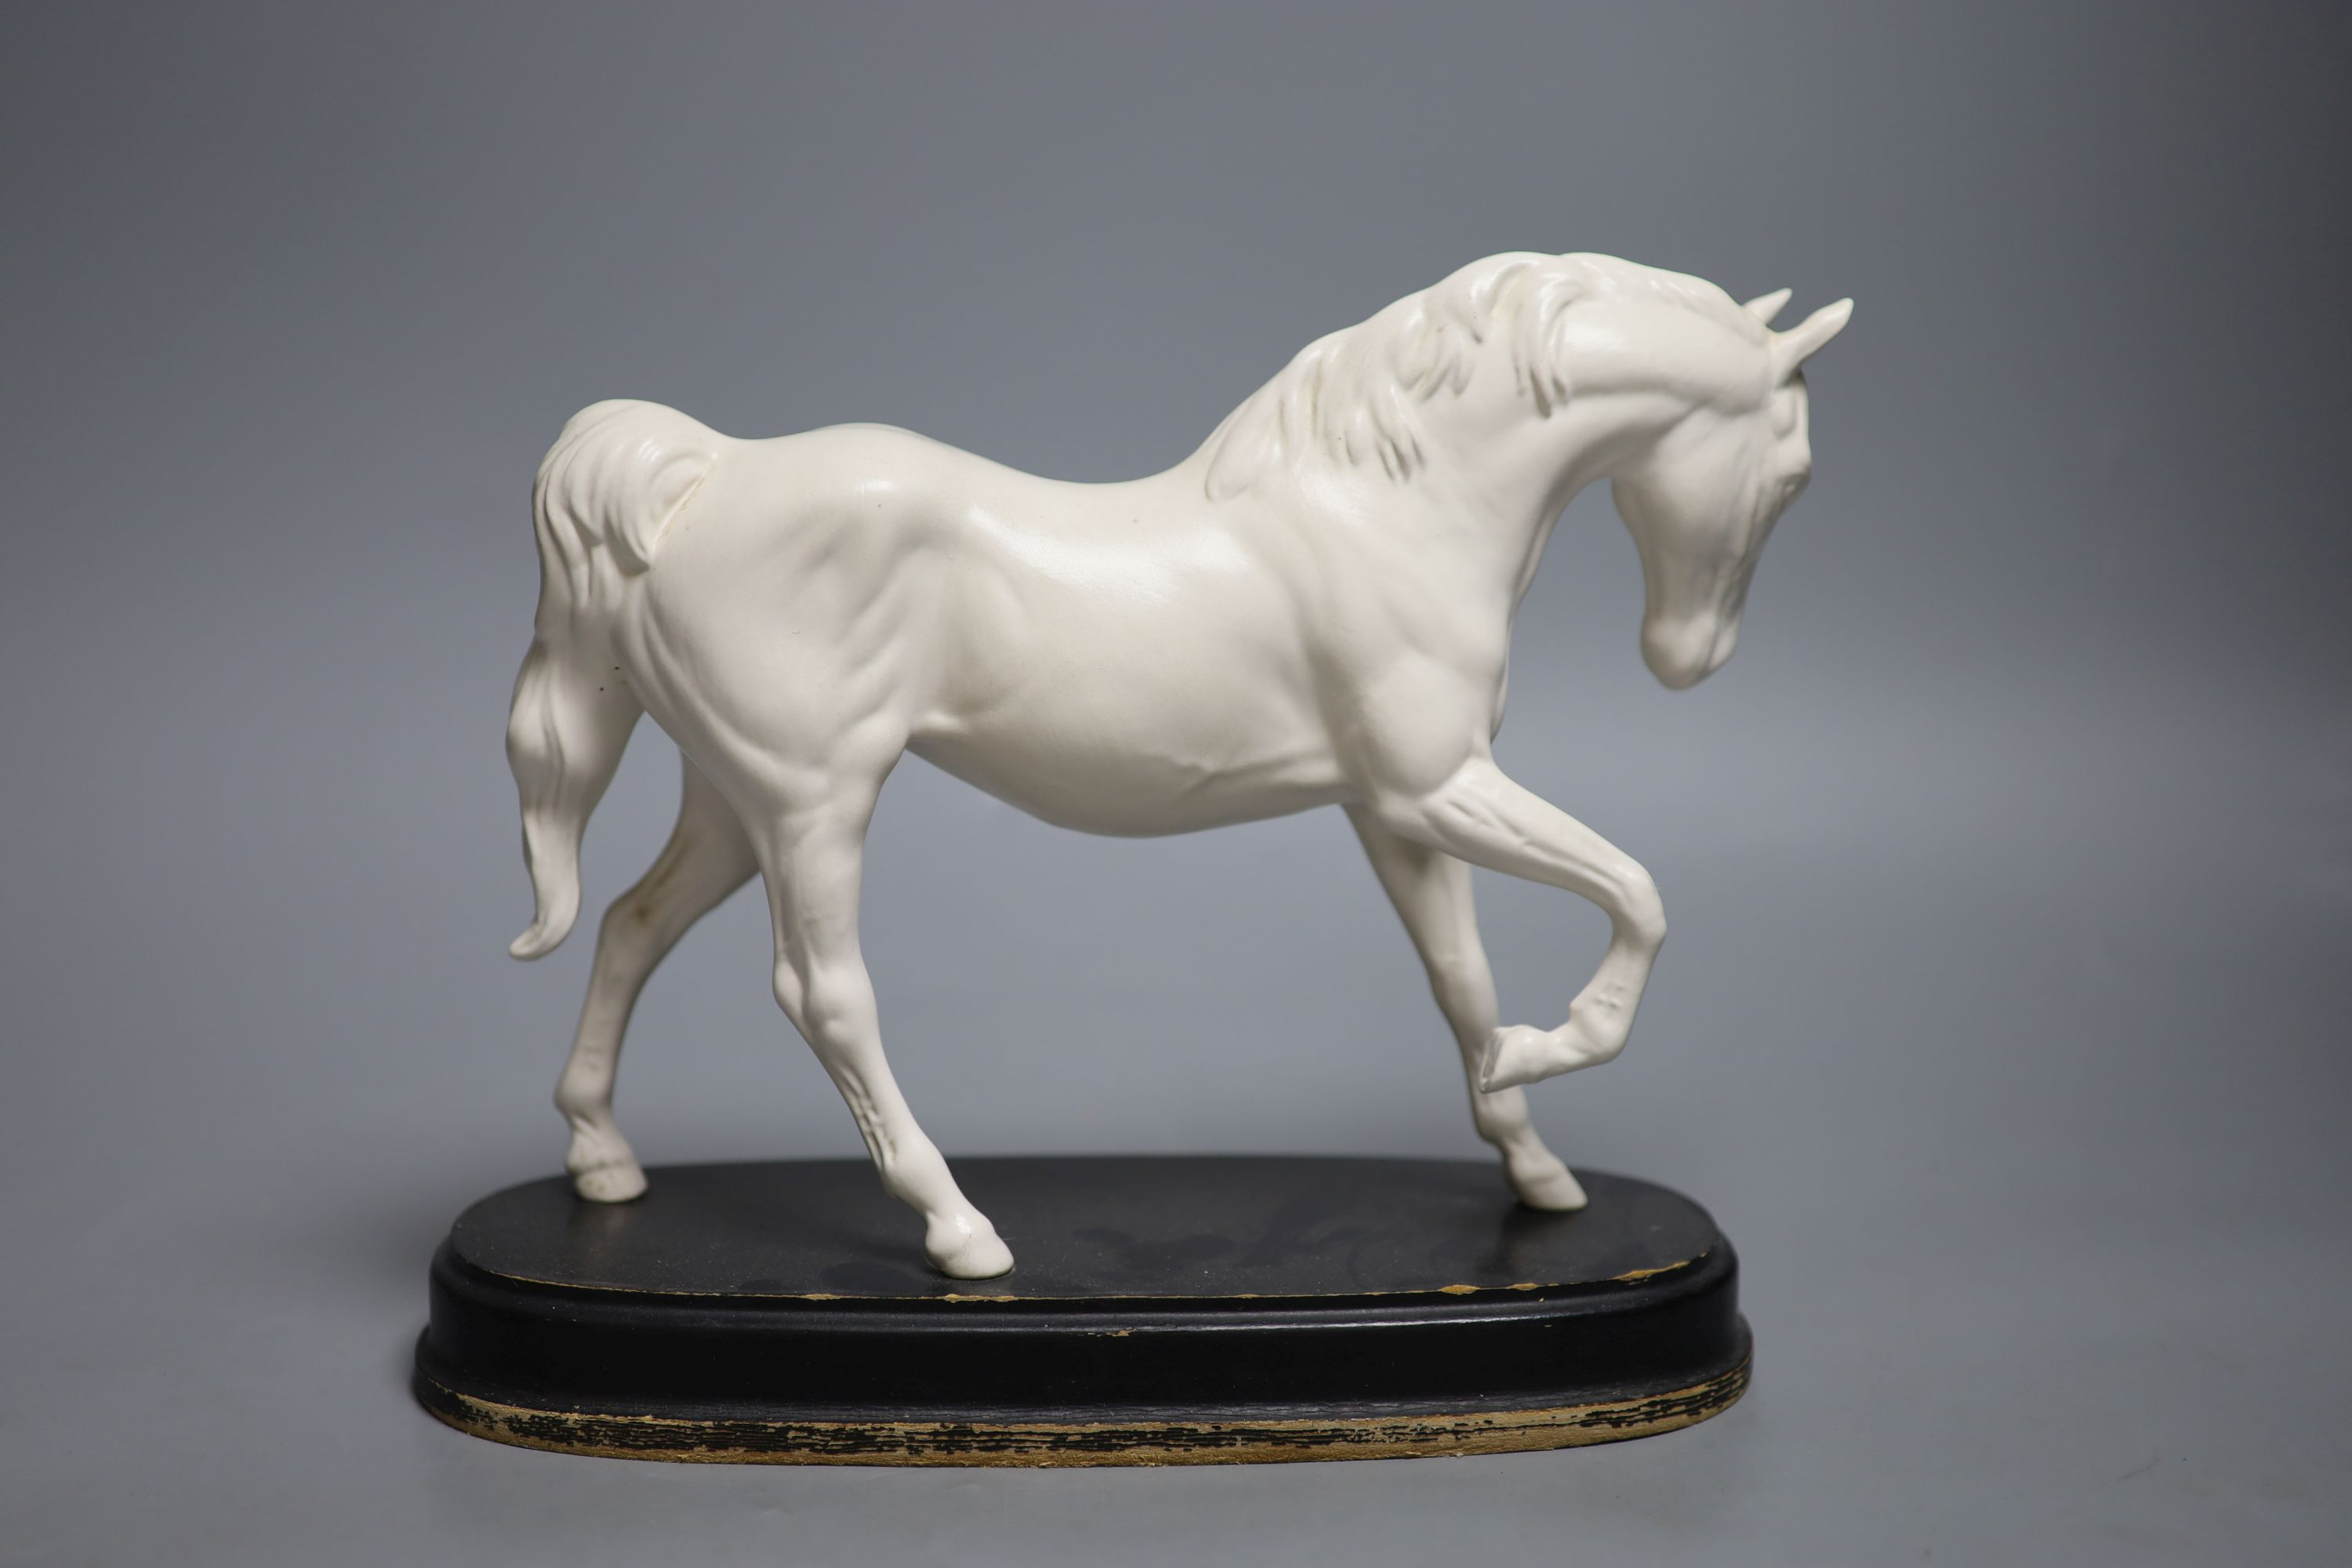 A Doulton silicon Lambeth planter, A Royal Doulton 'Spirit of Freedom' horse and a figural - Image 8 of 13